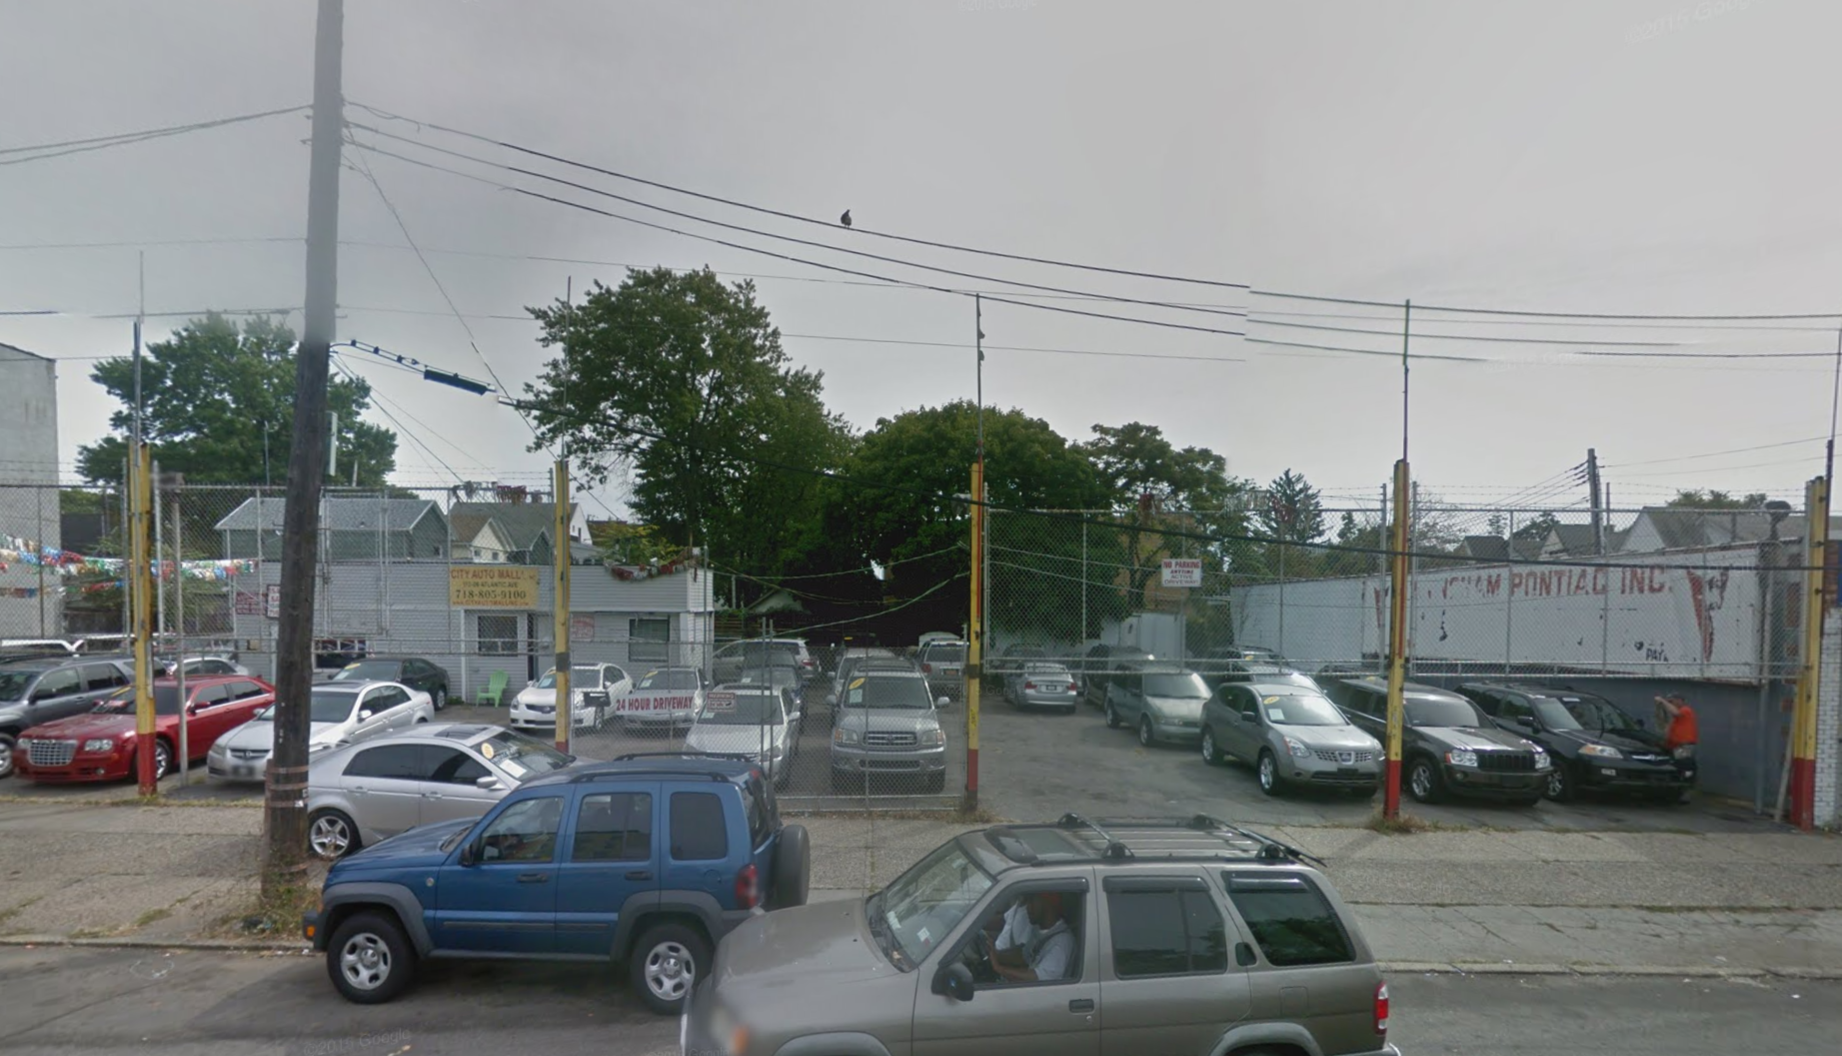 113-02 Atlantic Avenue, image via Google Maps